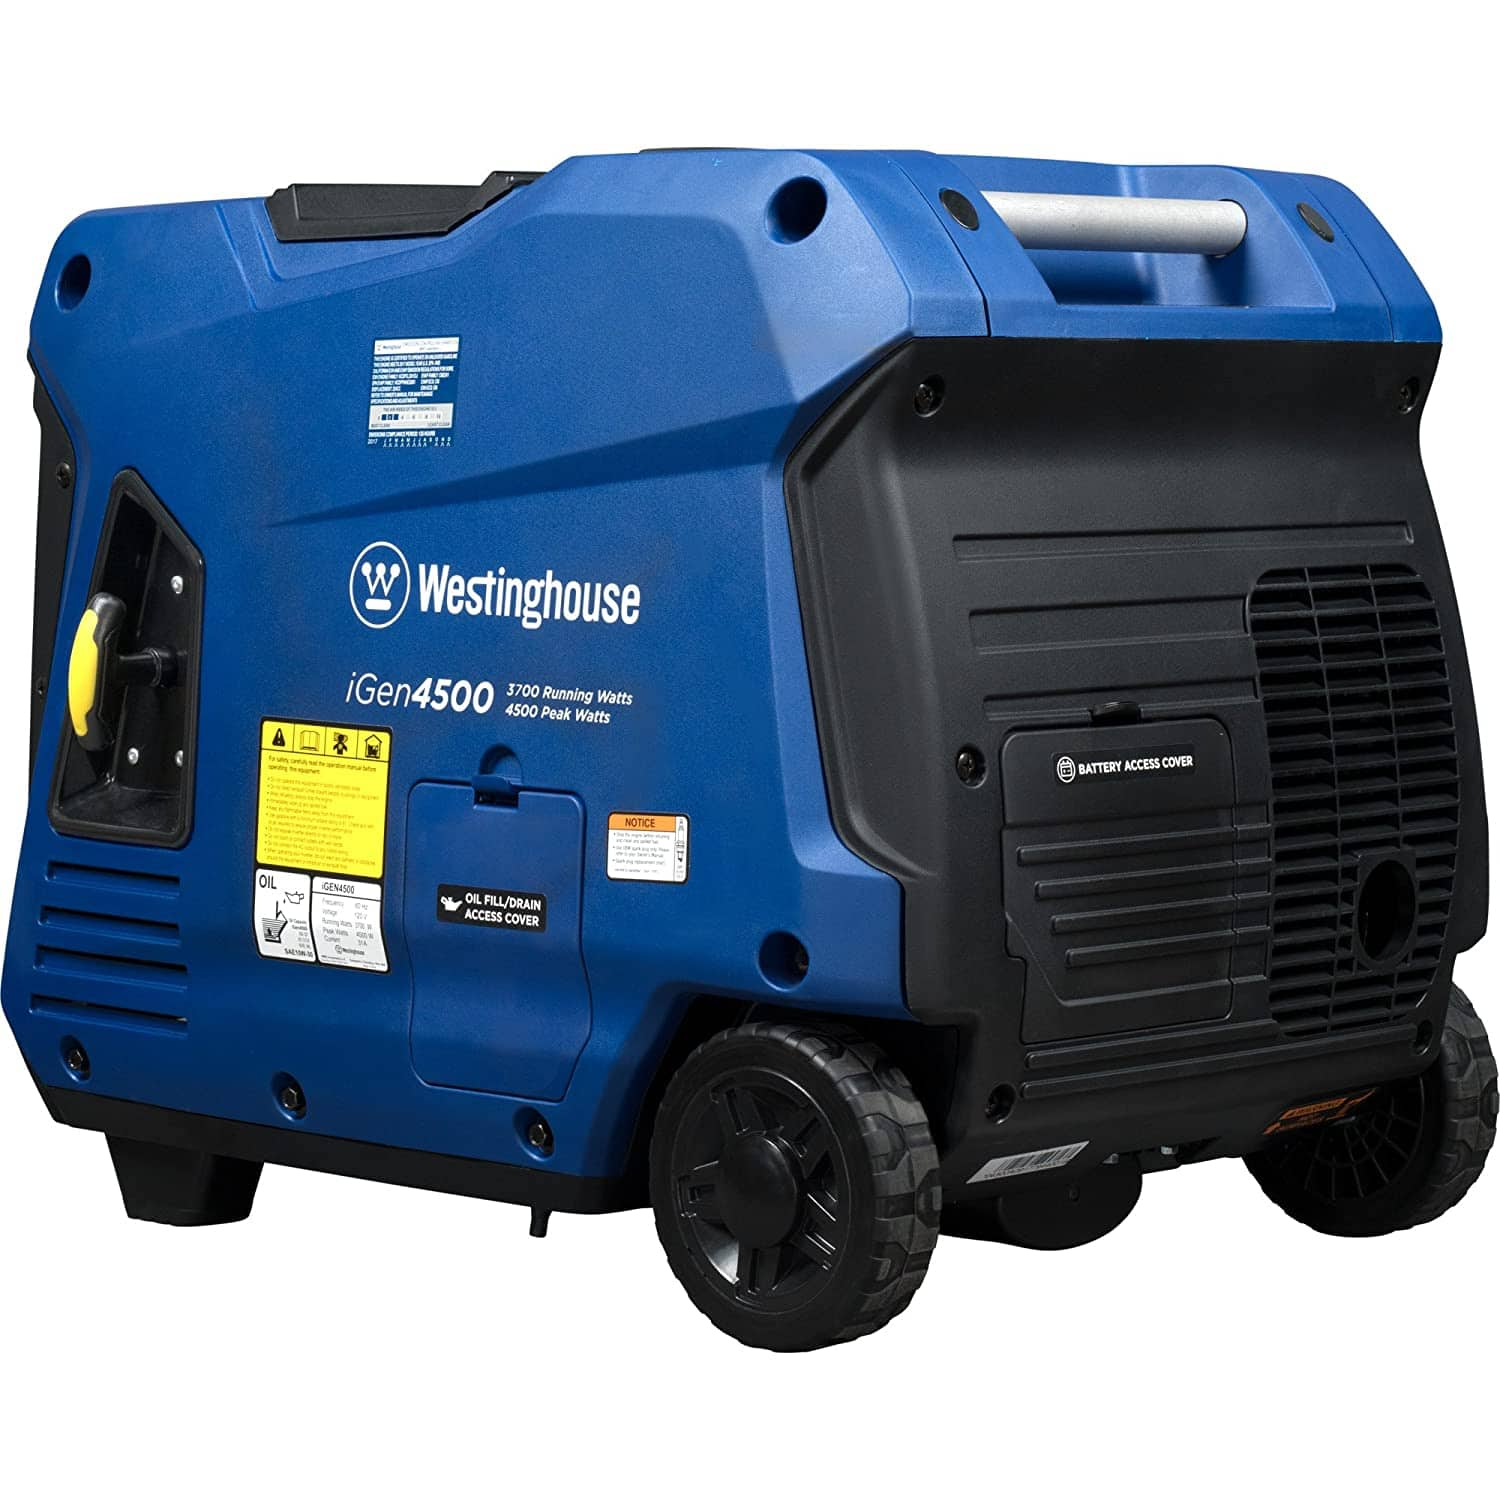 Westinghouse iGen4500 Super Quiet Portable Inverter Generator - 3700 Rated Watts and 4500 Peak Watts - Gas Powered - CARB Compliant $755.58